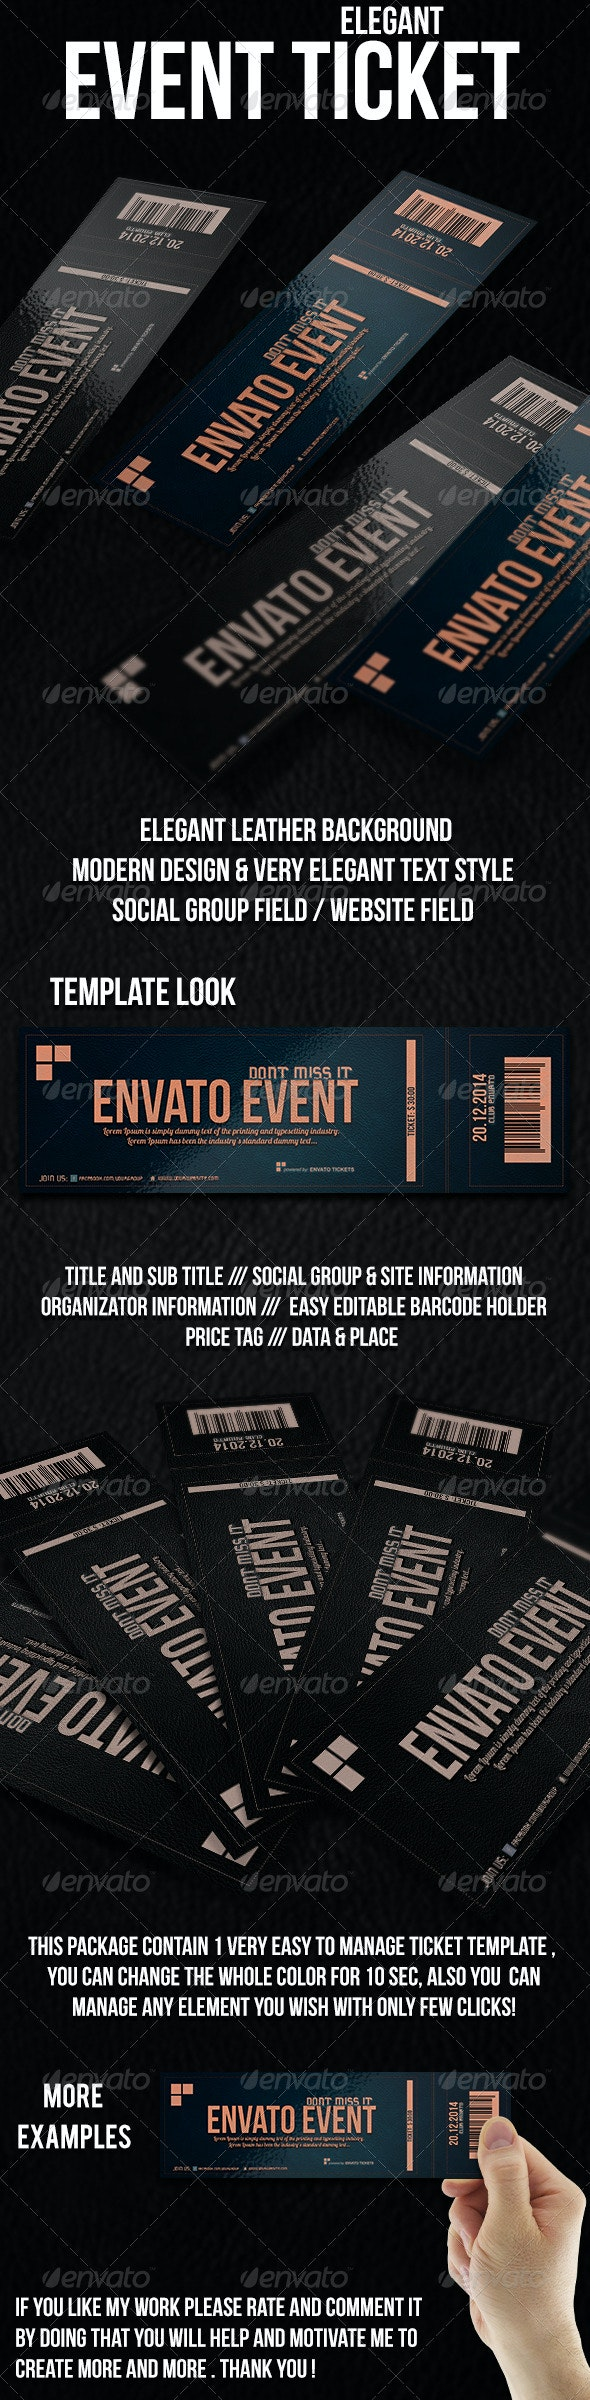 Elegant Ticket Template - Cards & Invites Print Templates